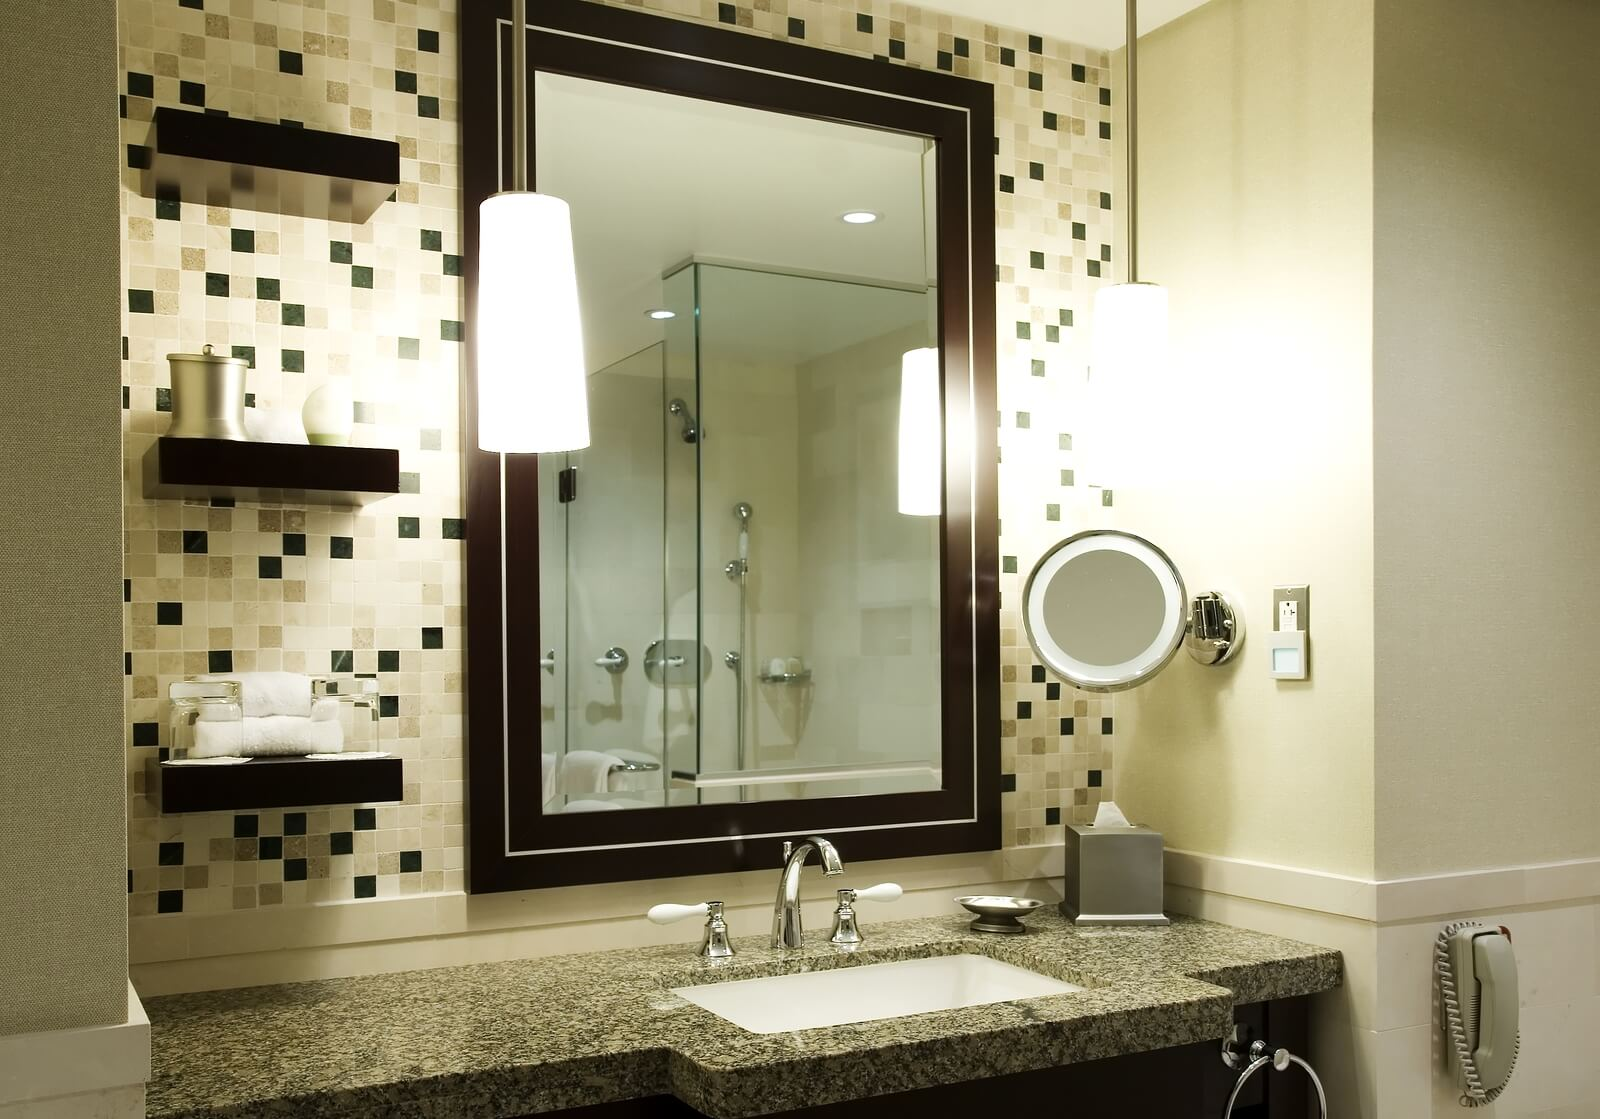 Tile Trends In Boulder KBC Remodeling Services - Bathroom remodel boulder